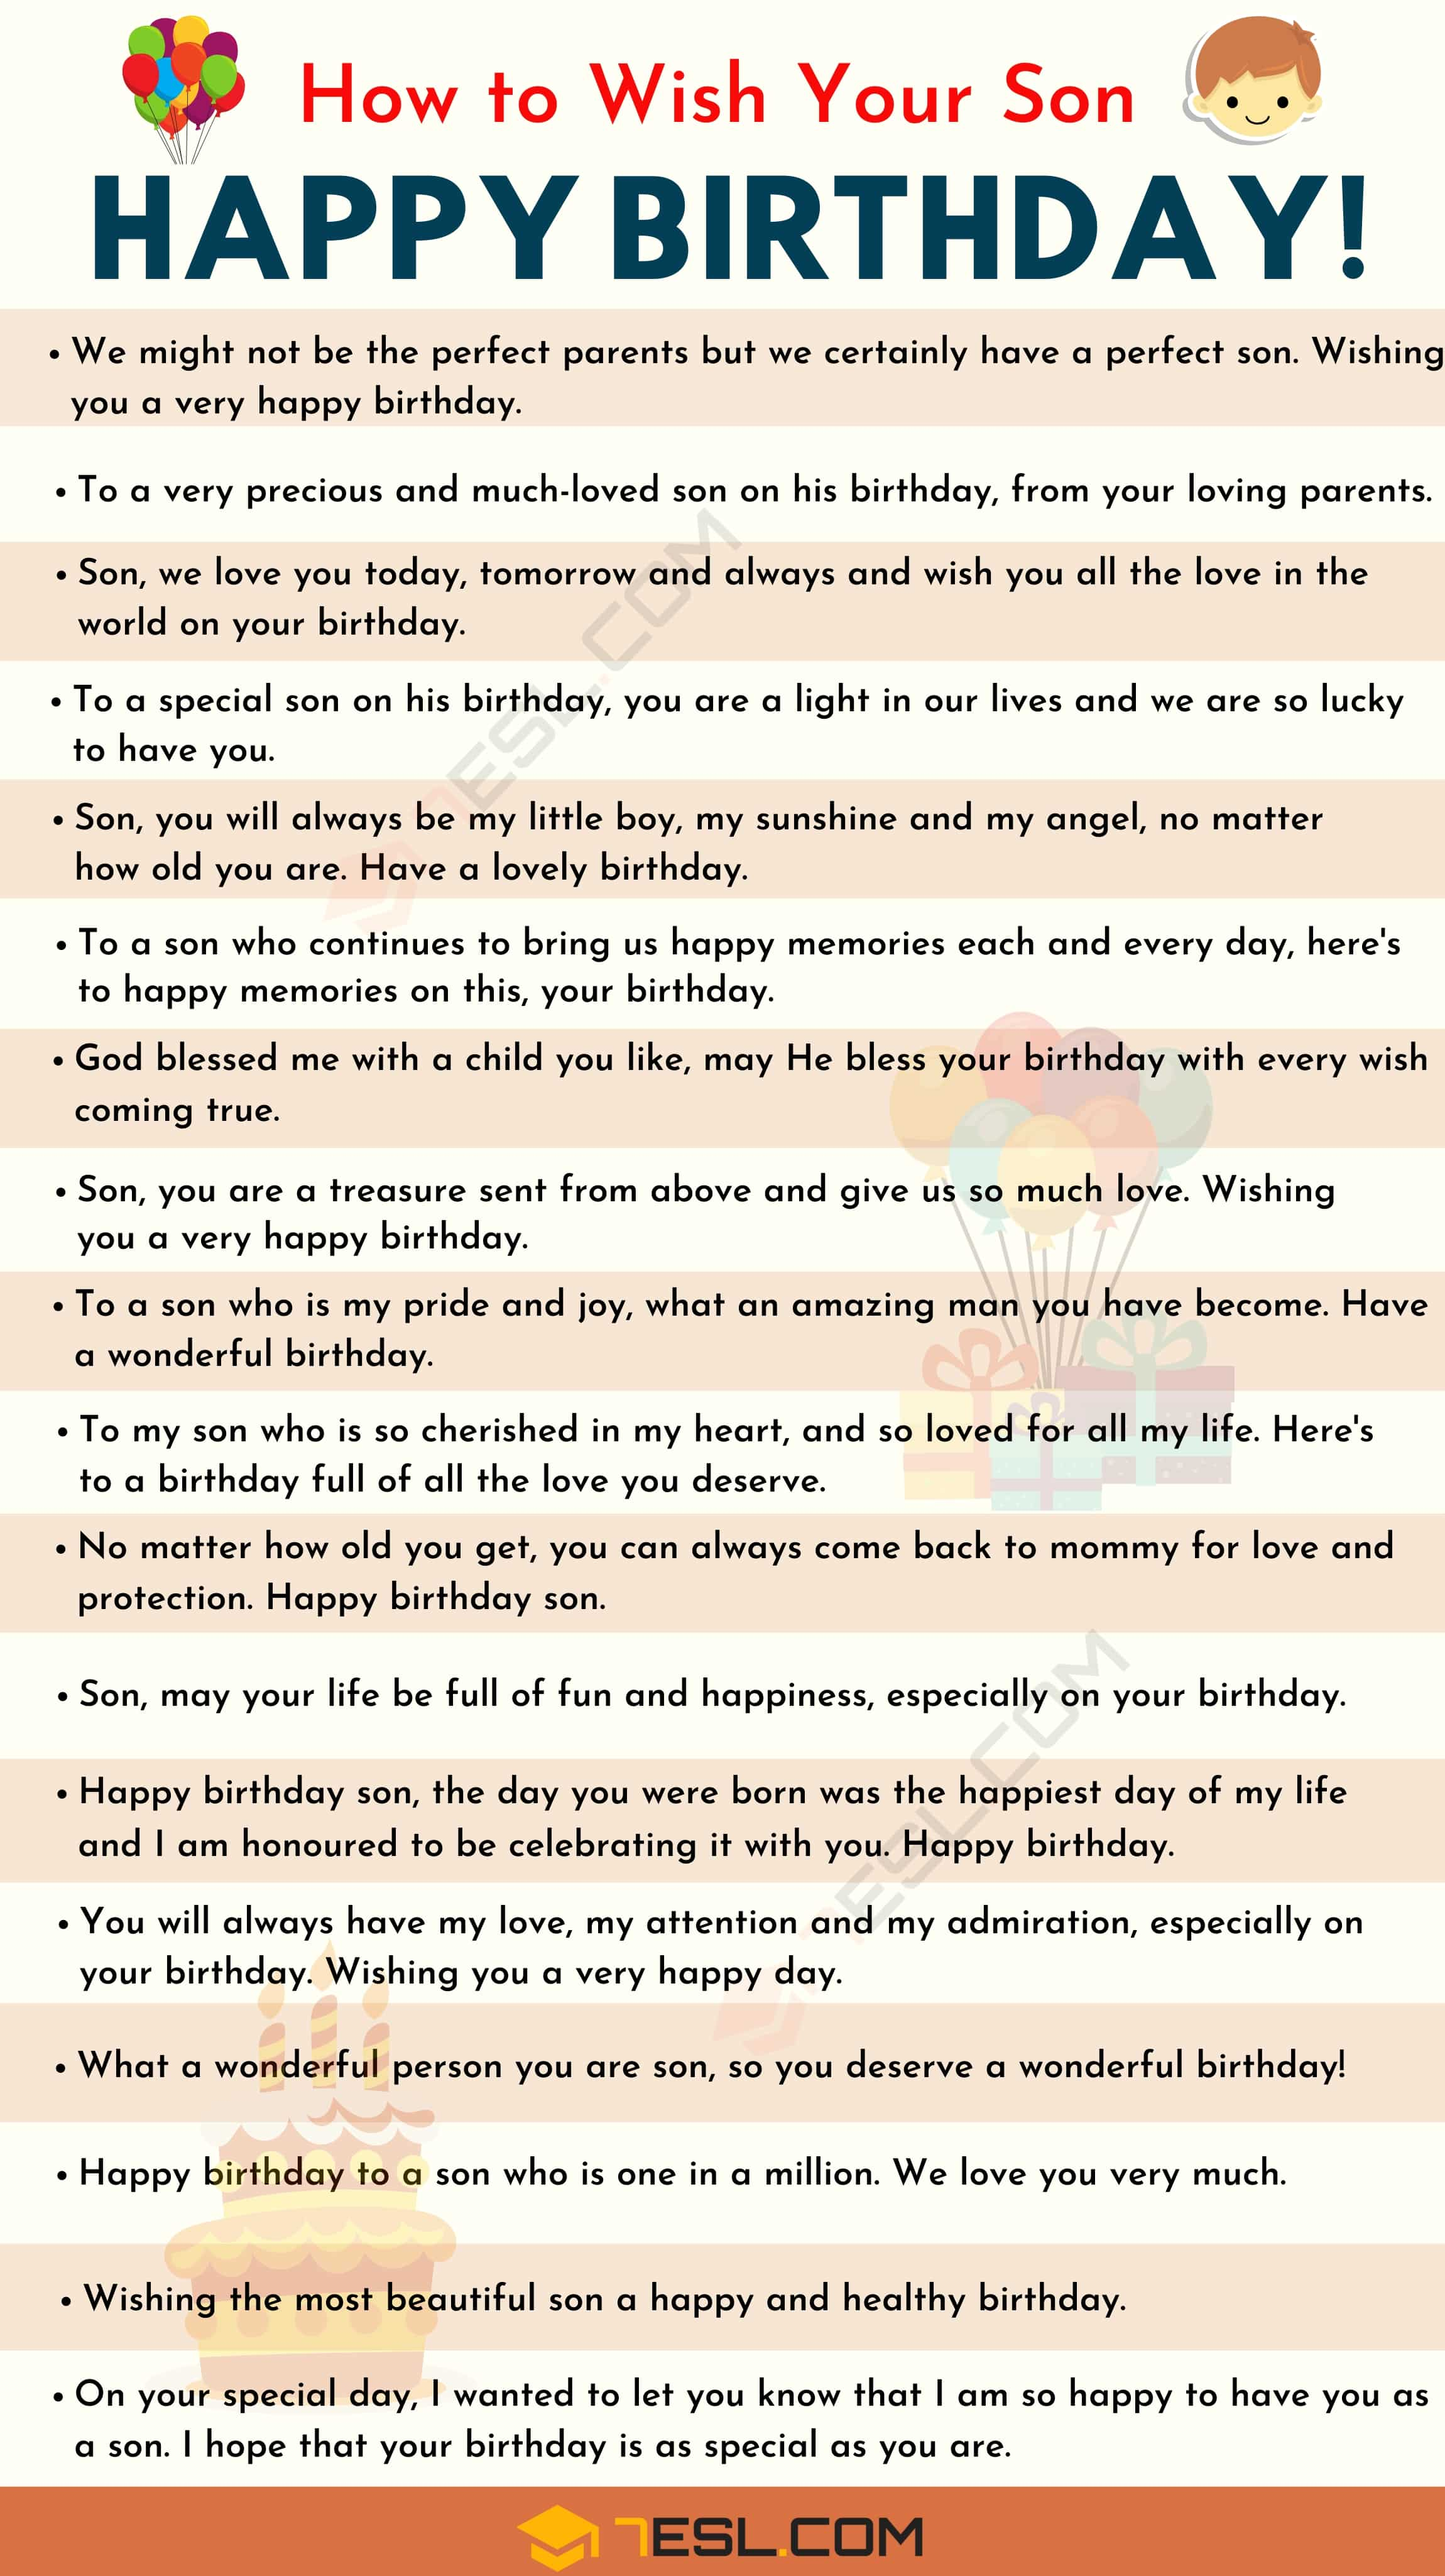 Happy Birthday Son 35 Meaningful And Funny Birthday Wishes For Son 7esl